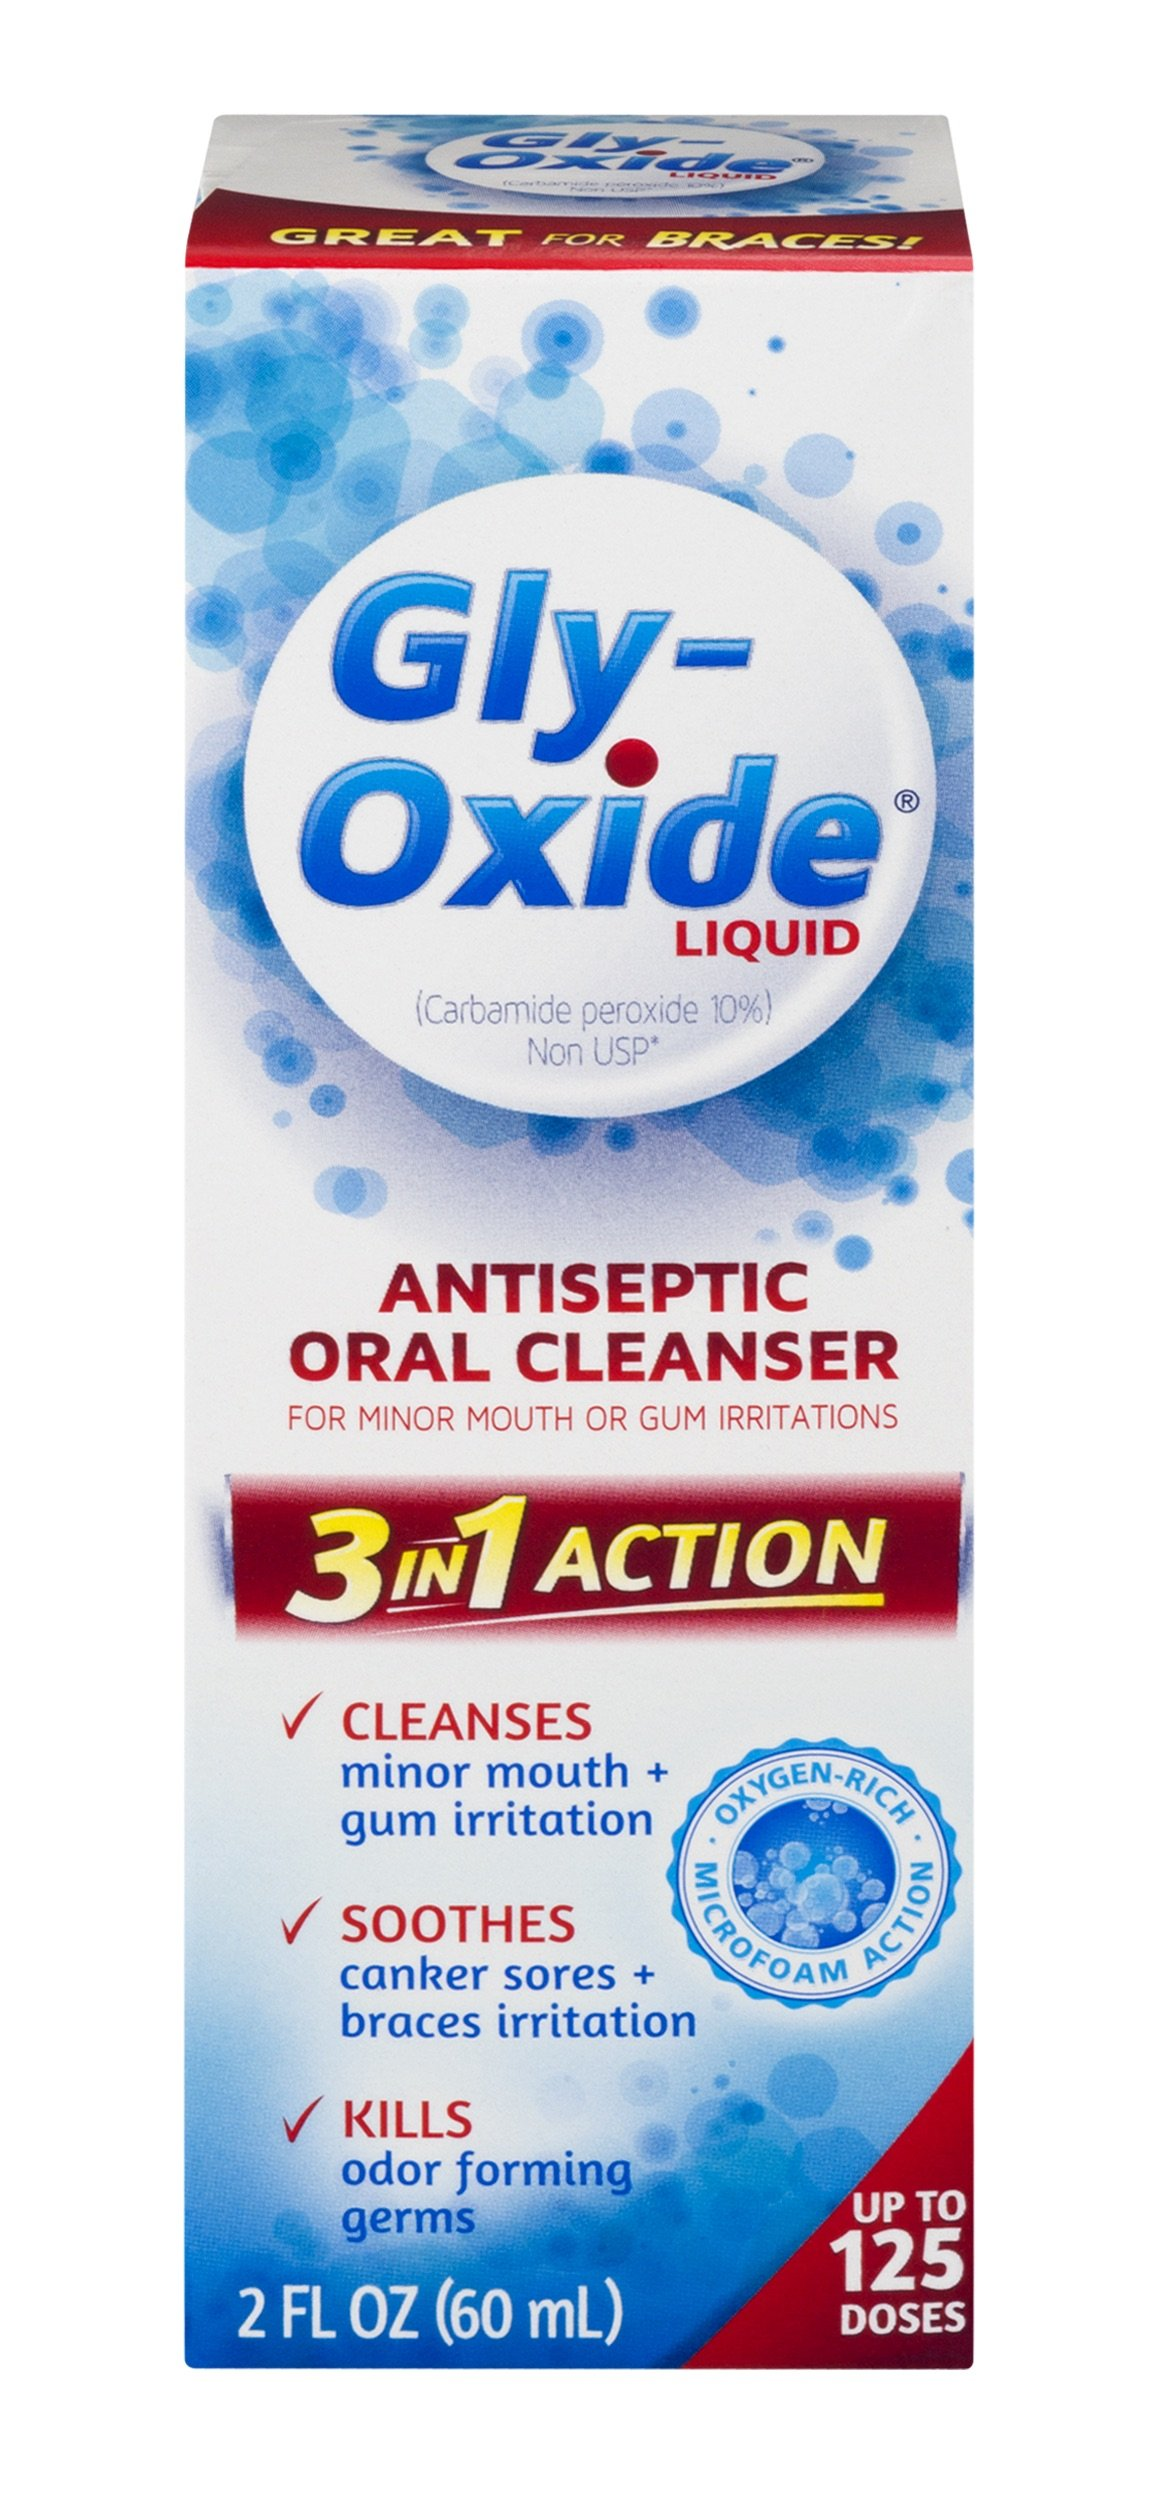 Gly-Oxide Liquid Antiseptic Oral Cleanser-For Minor Mouth or Gum Irritations, 2 Fluid Ounce-Packaging May Vary